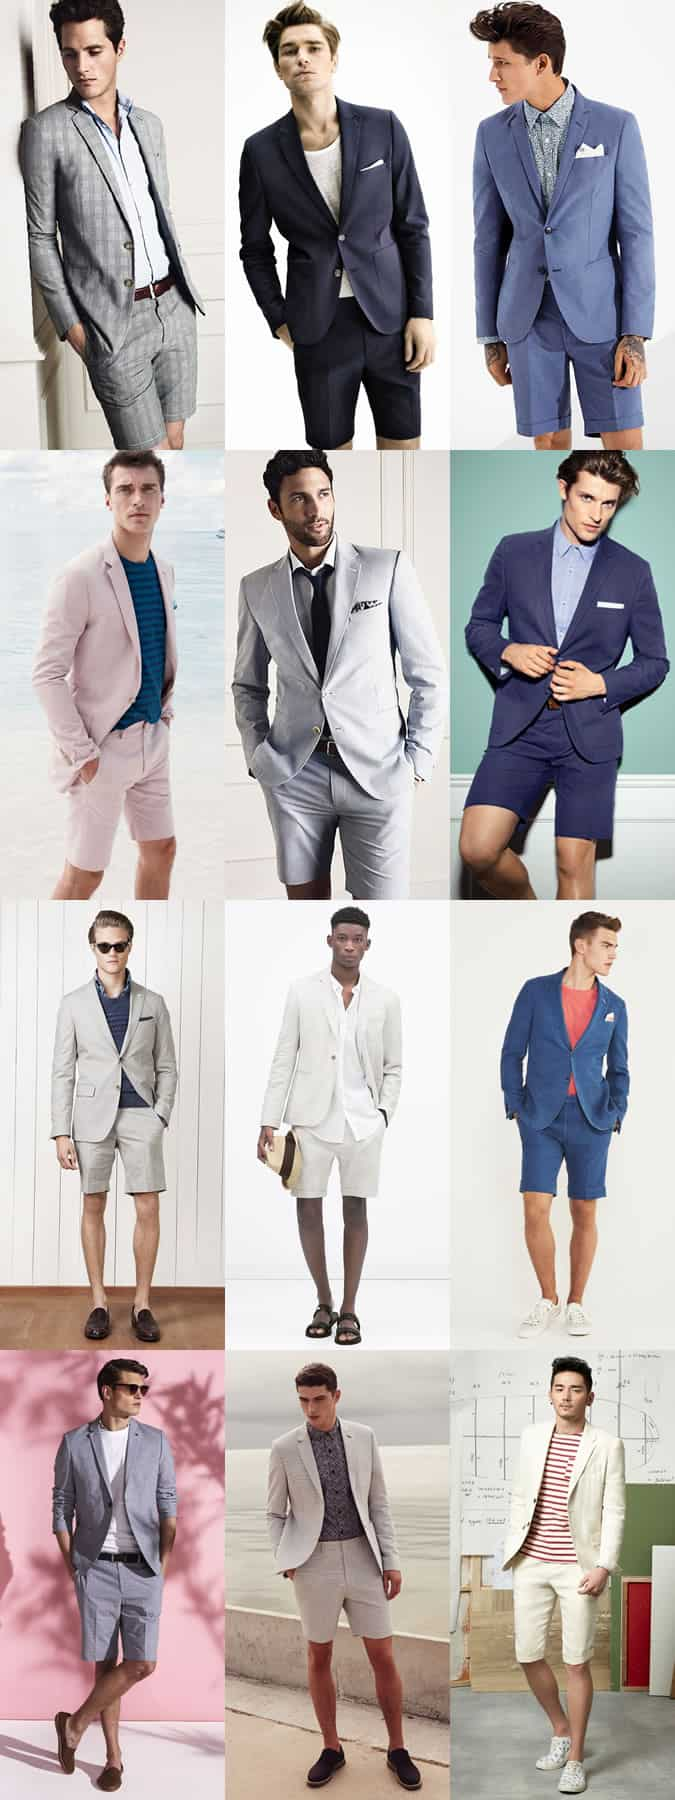 Men's Shorts Suits - Spring/Summer Outfit Inspiration Lookbook